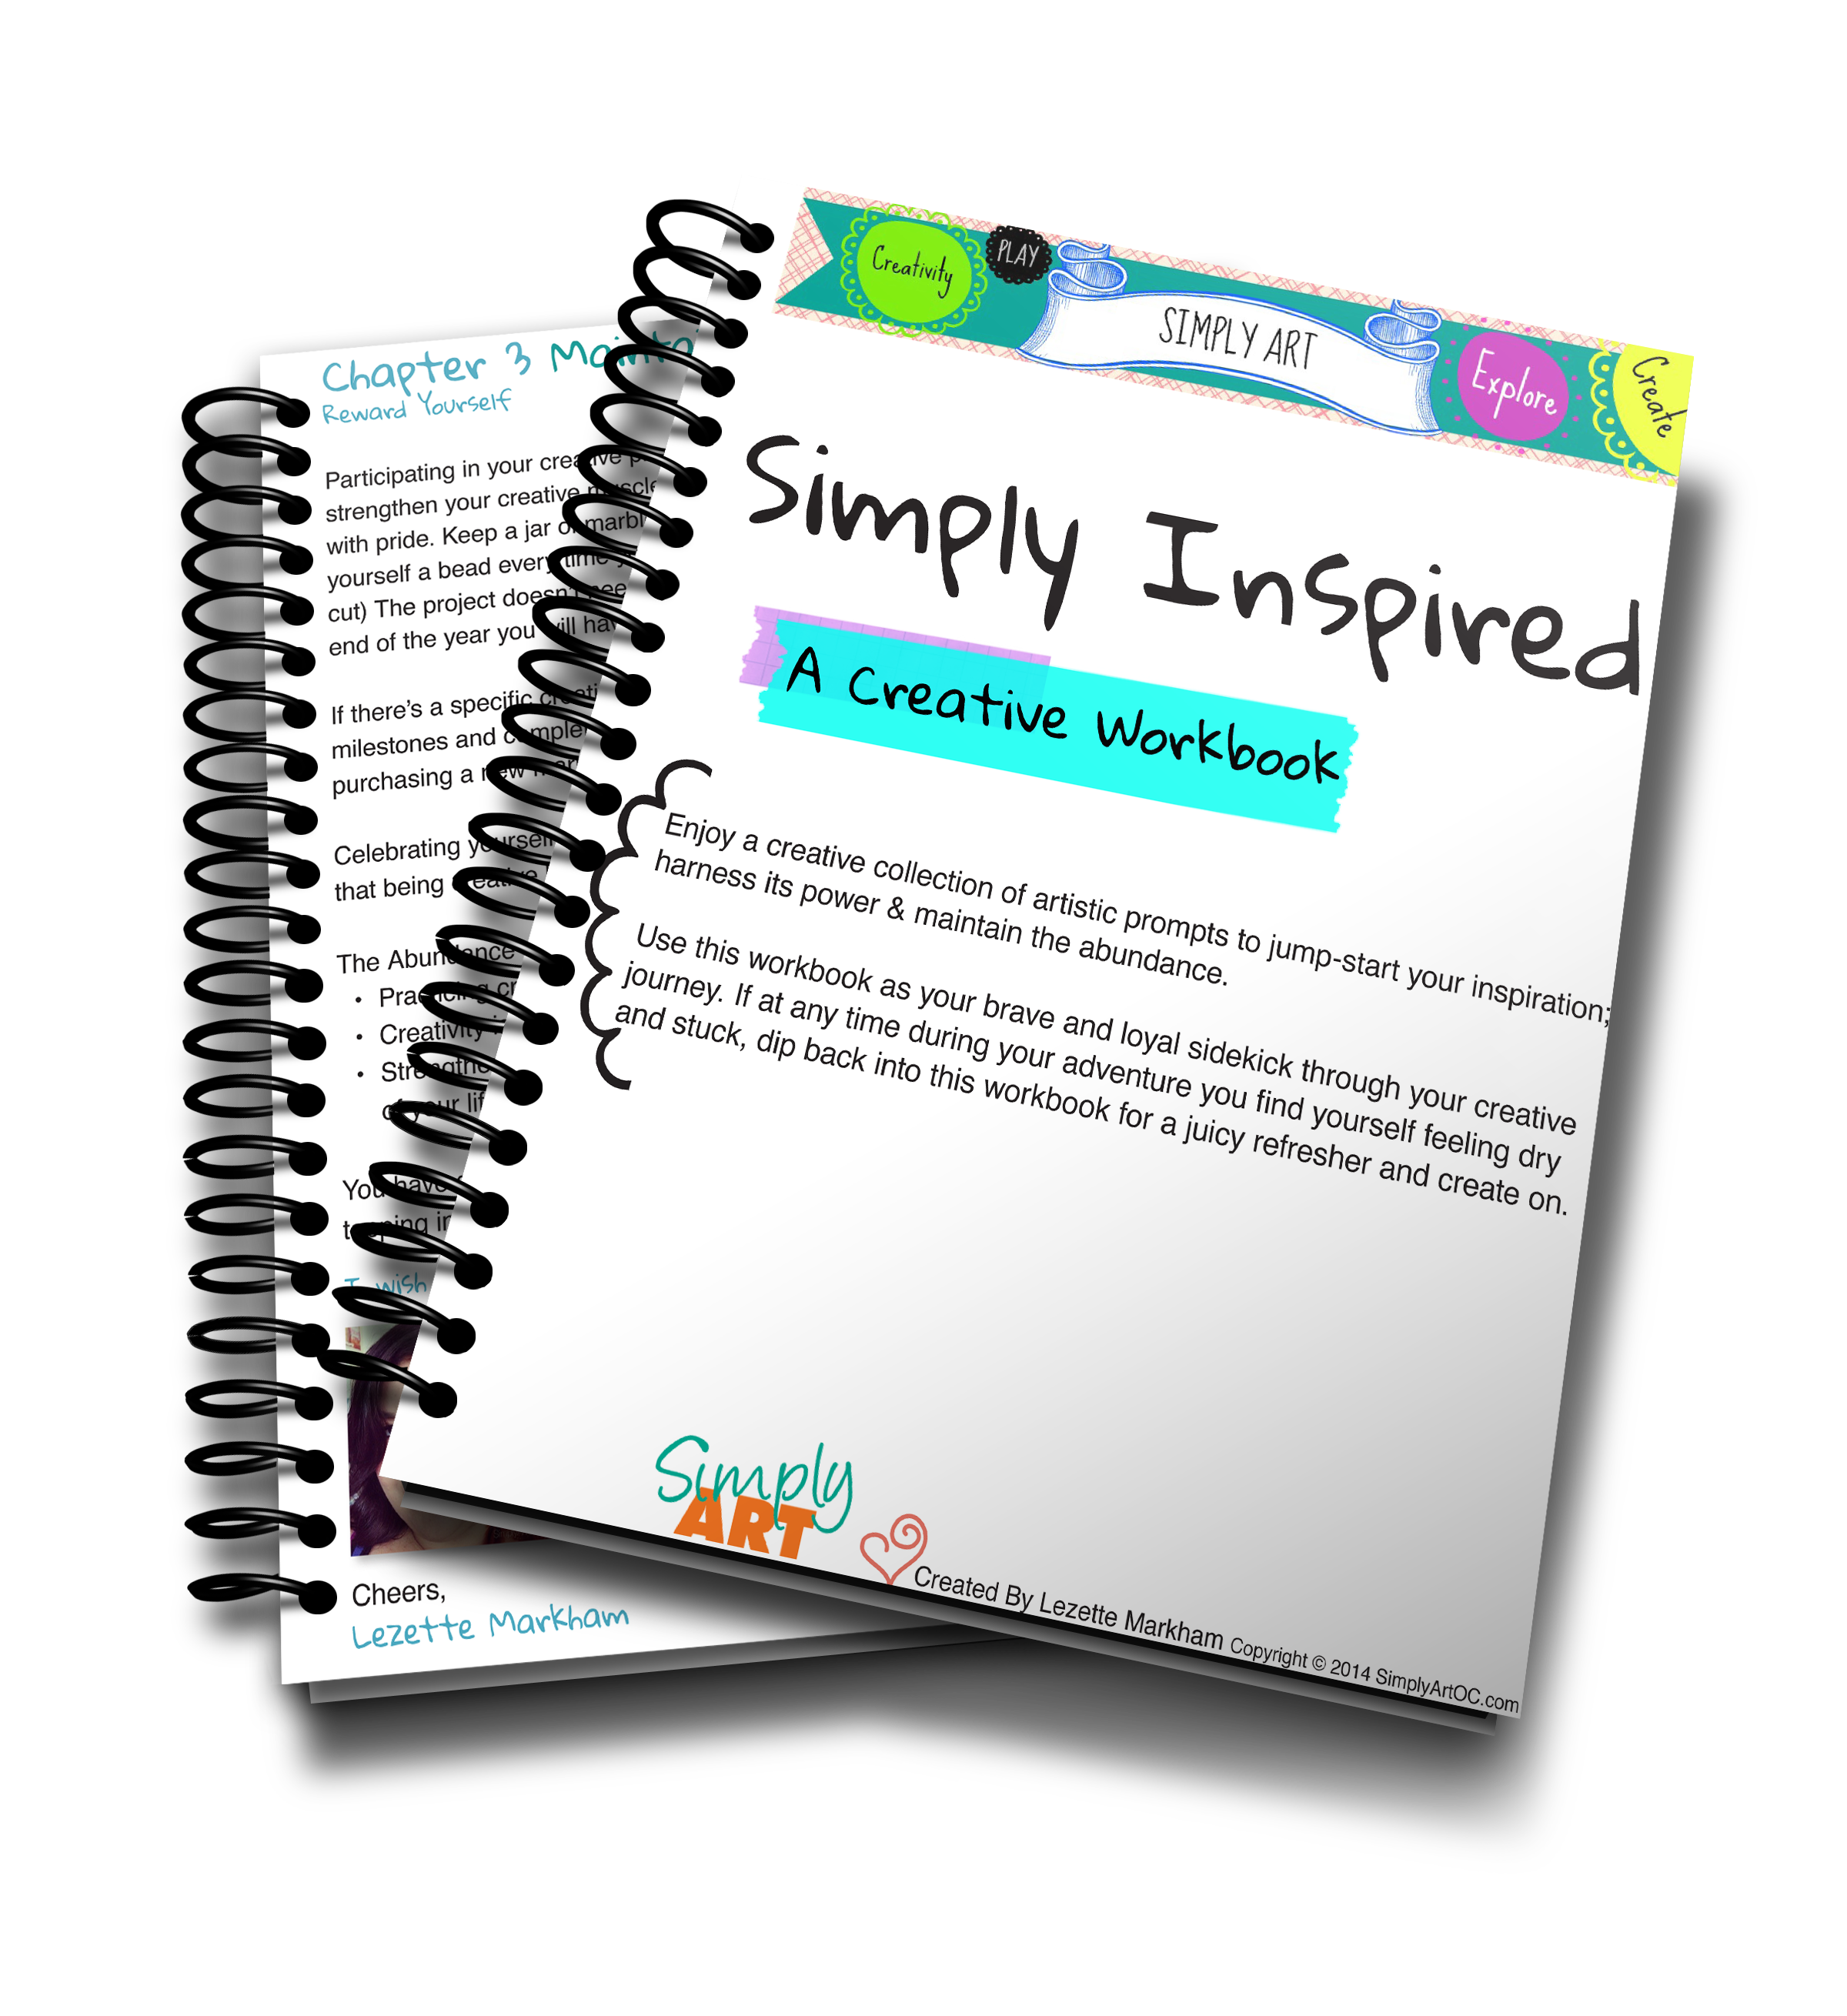 Simply Art - Simply Inspired A Creative Workbook